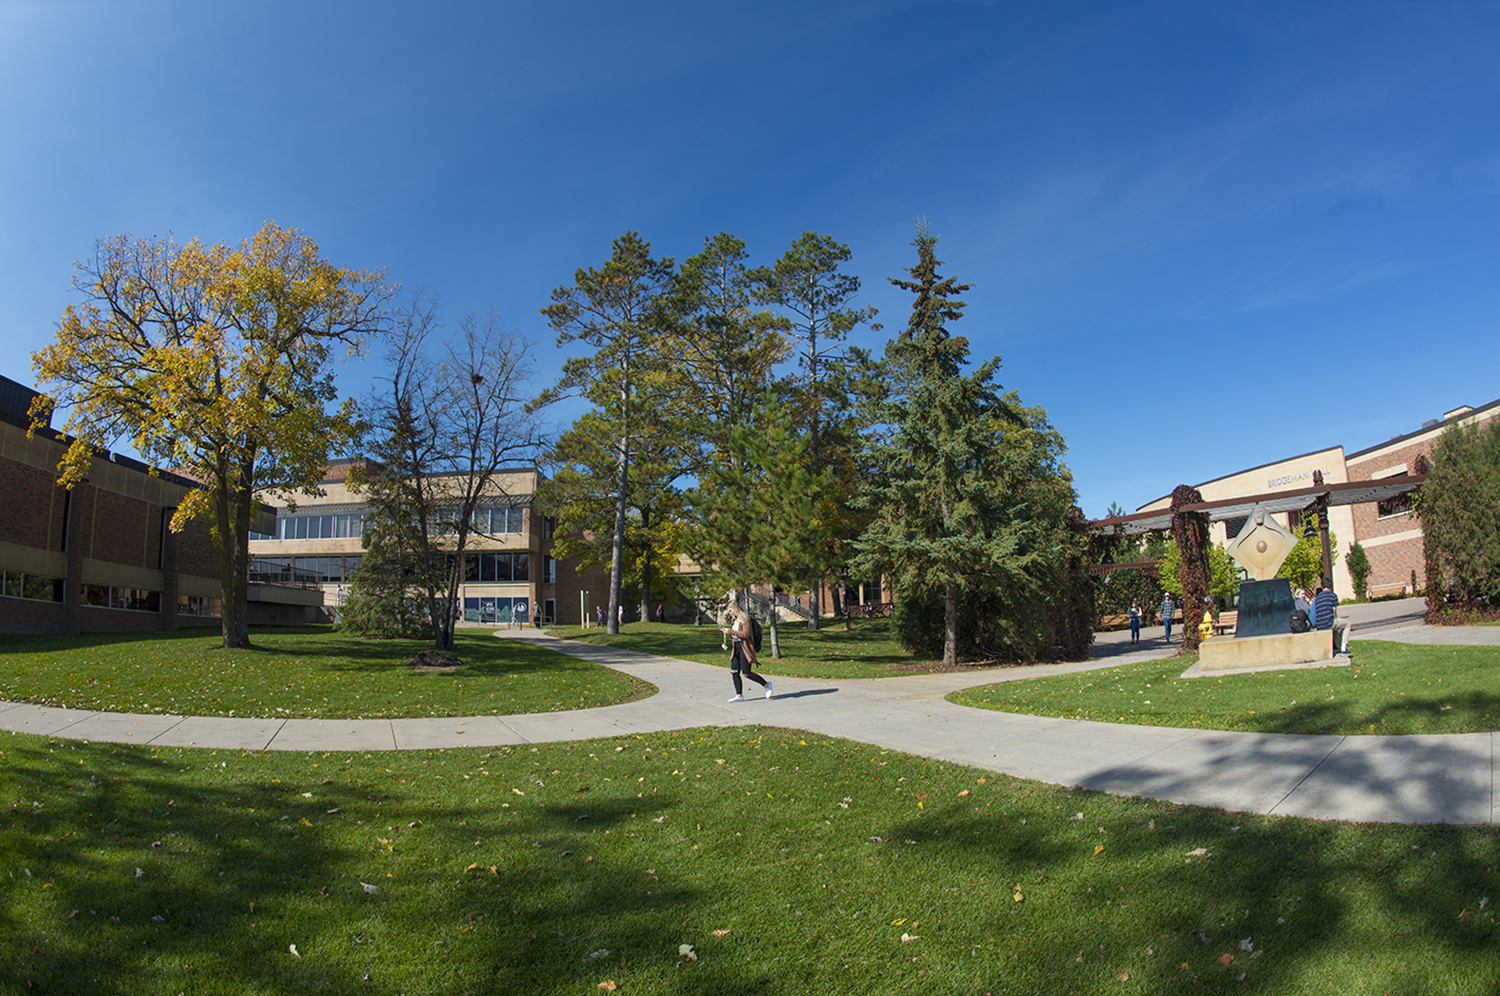 Students on campus